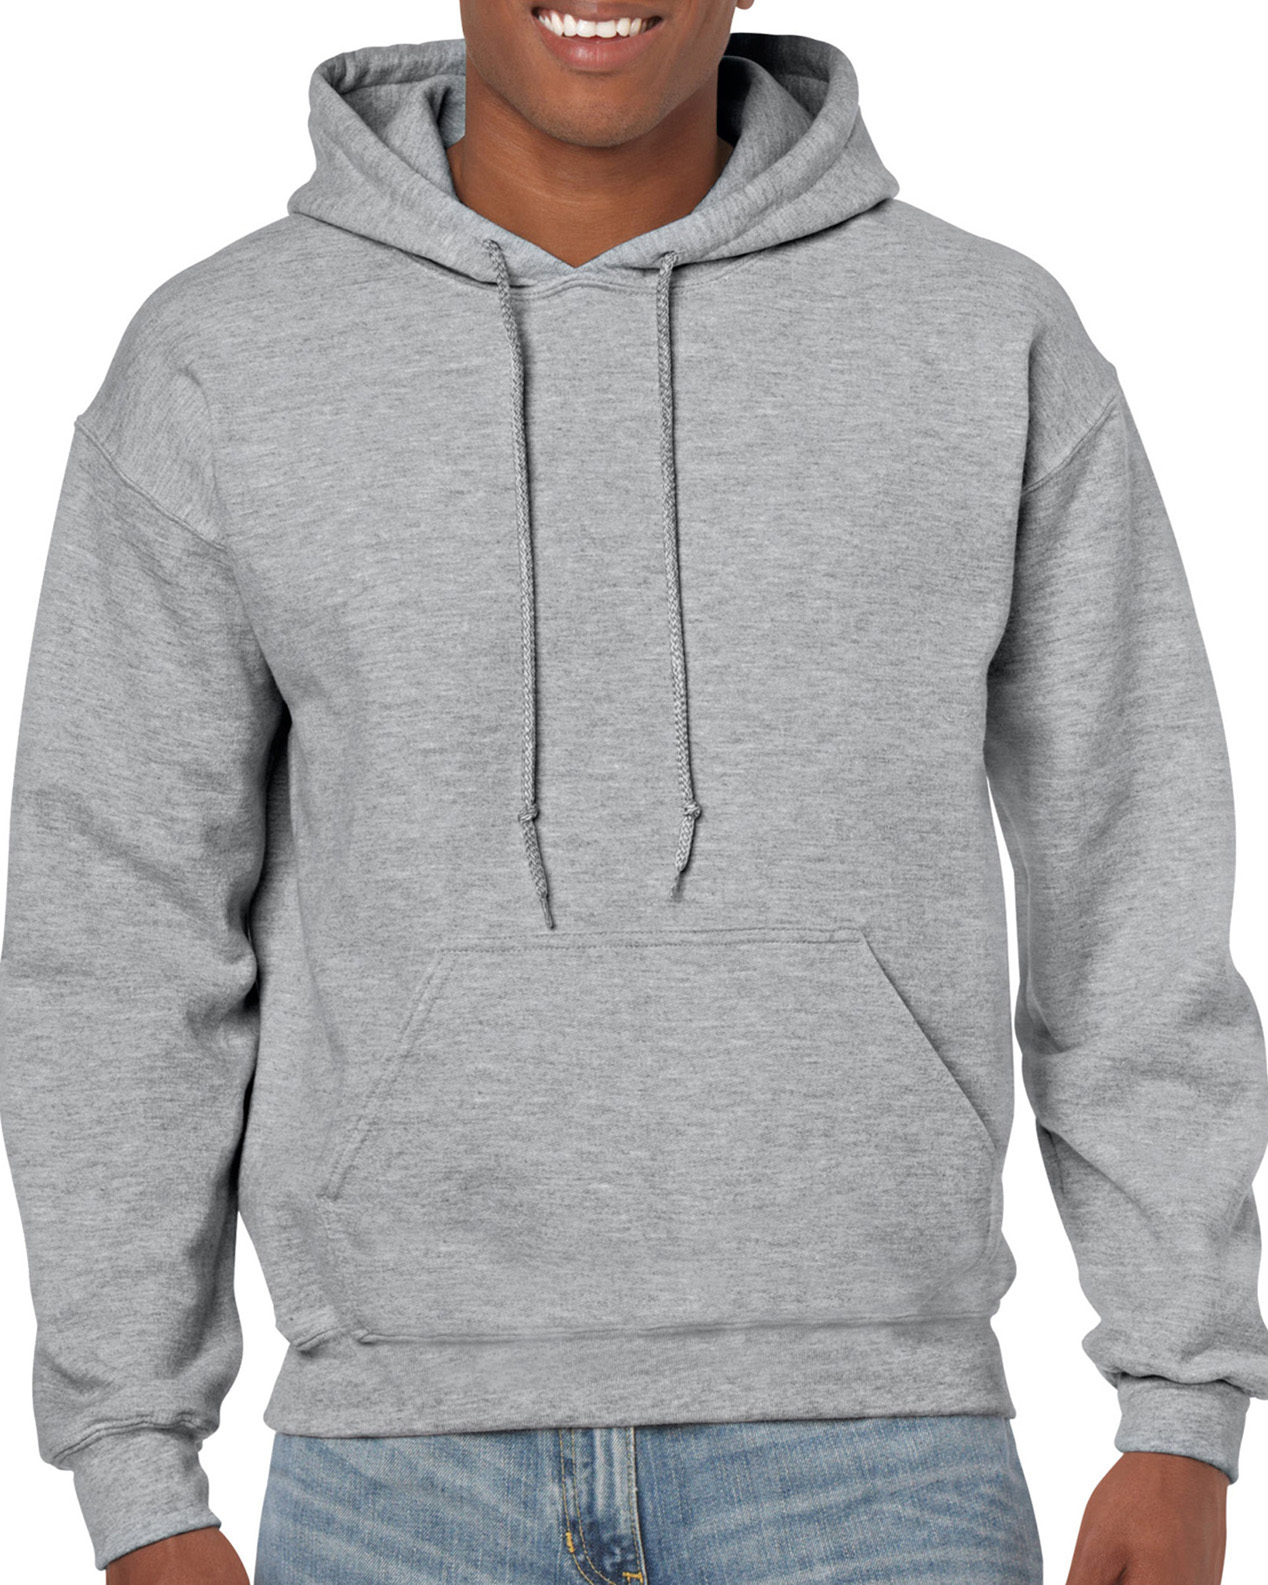 18500   Gildan® Heavy Blend™   8.0 oz yd²   Adult Hooded Sweatshirt   Gildan 166147db4d